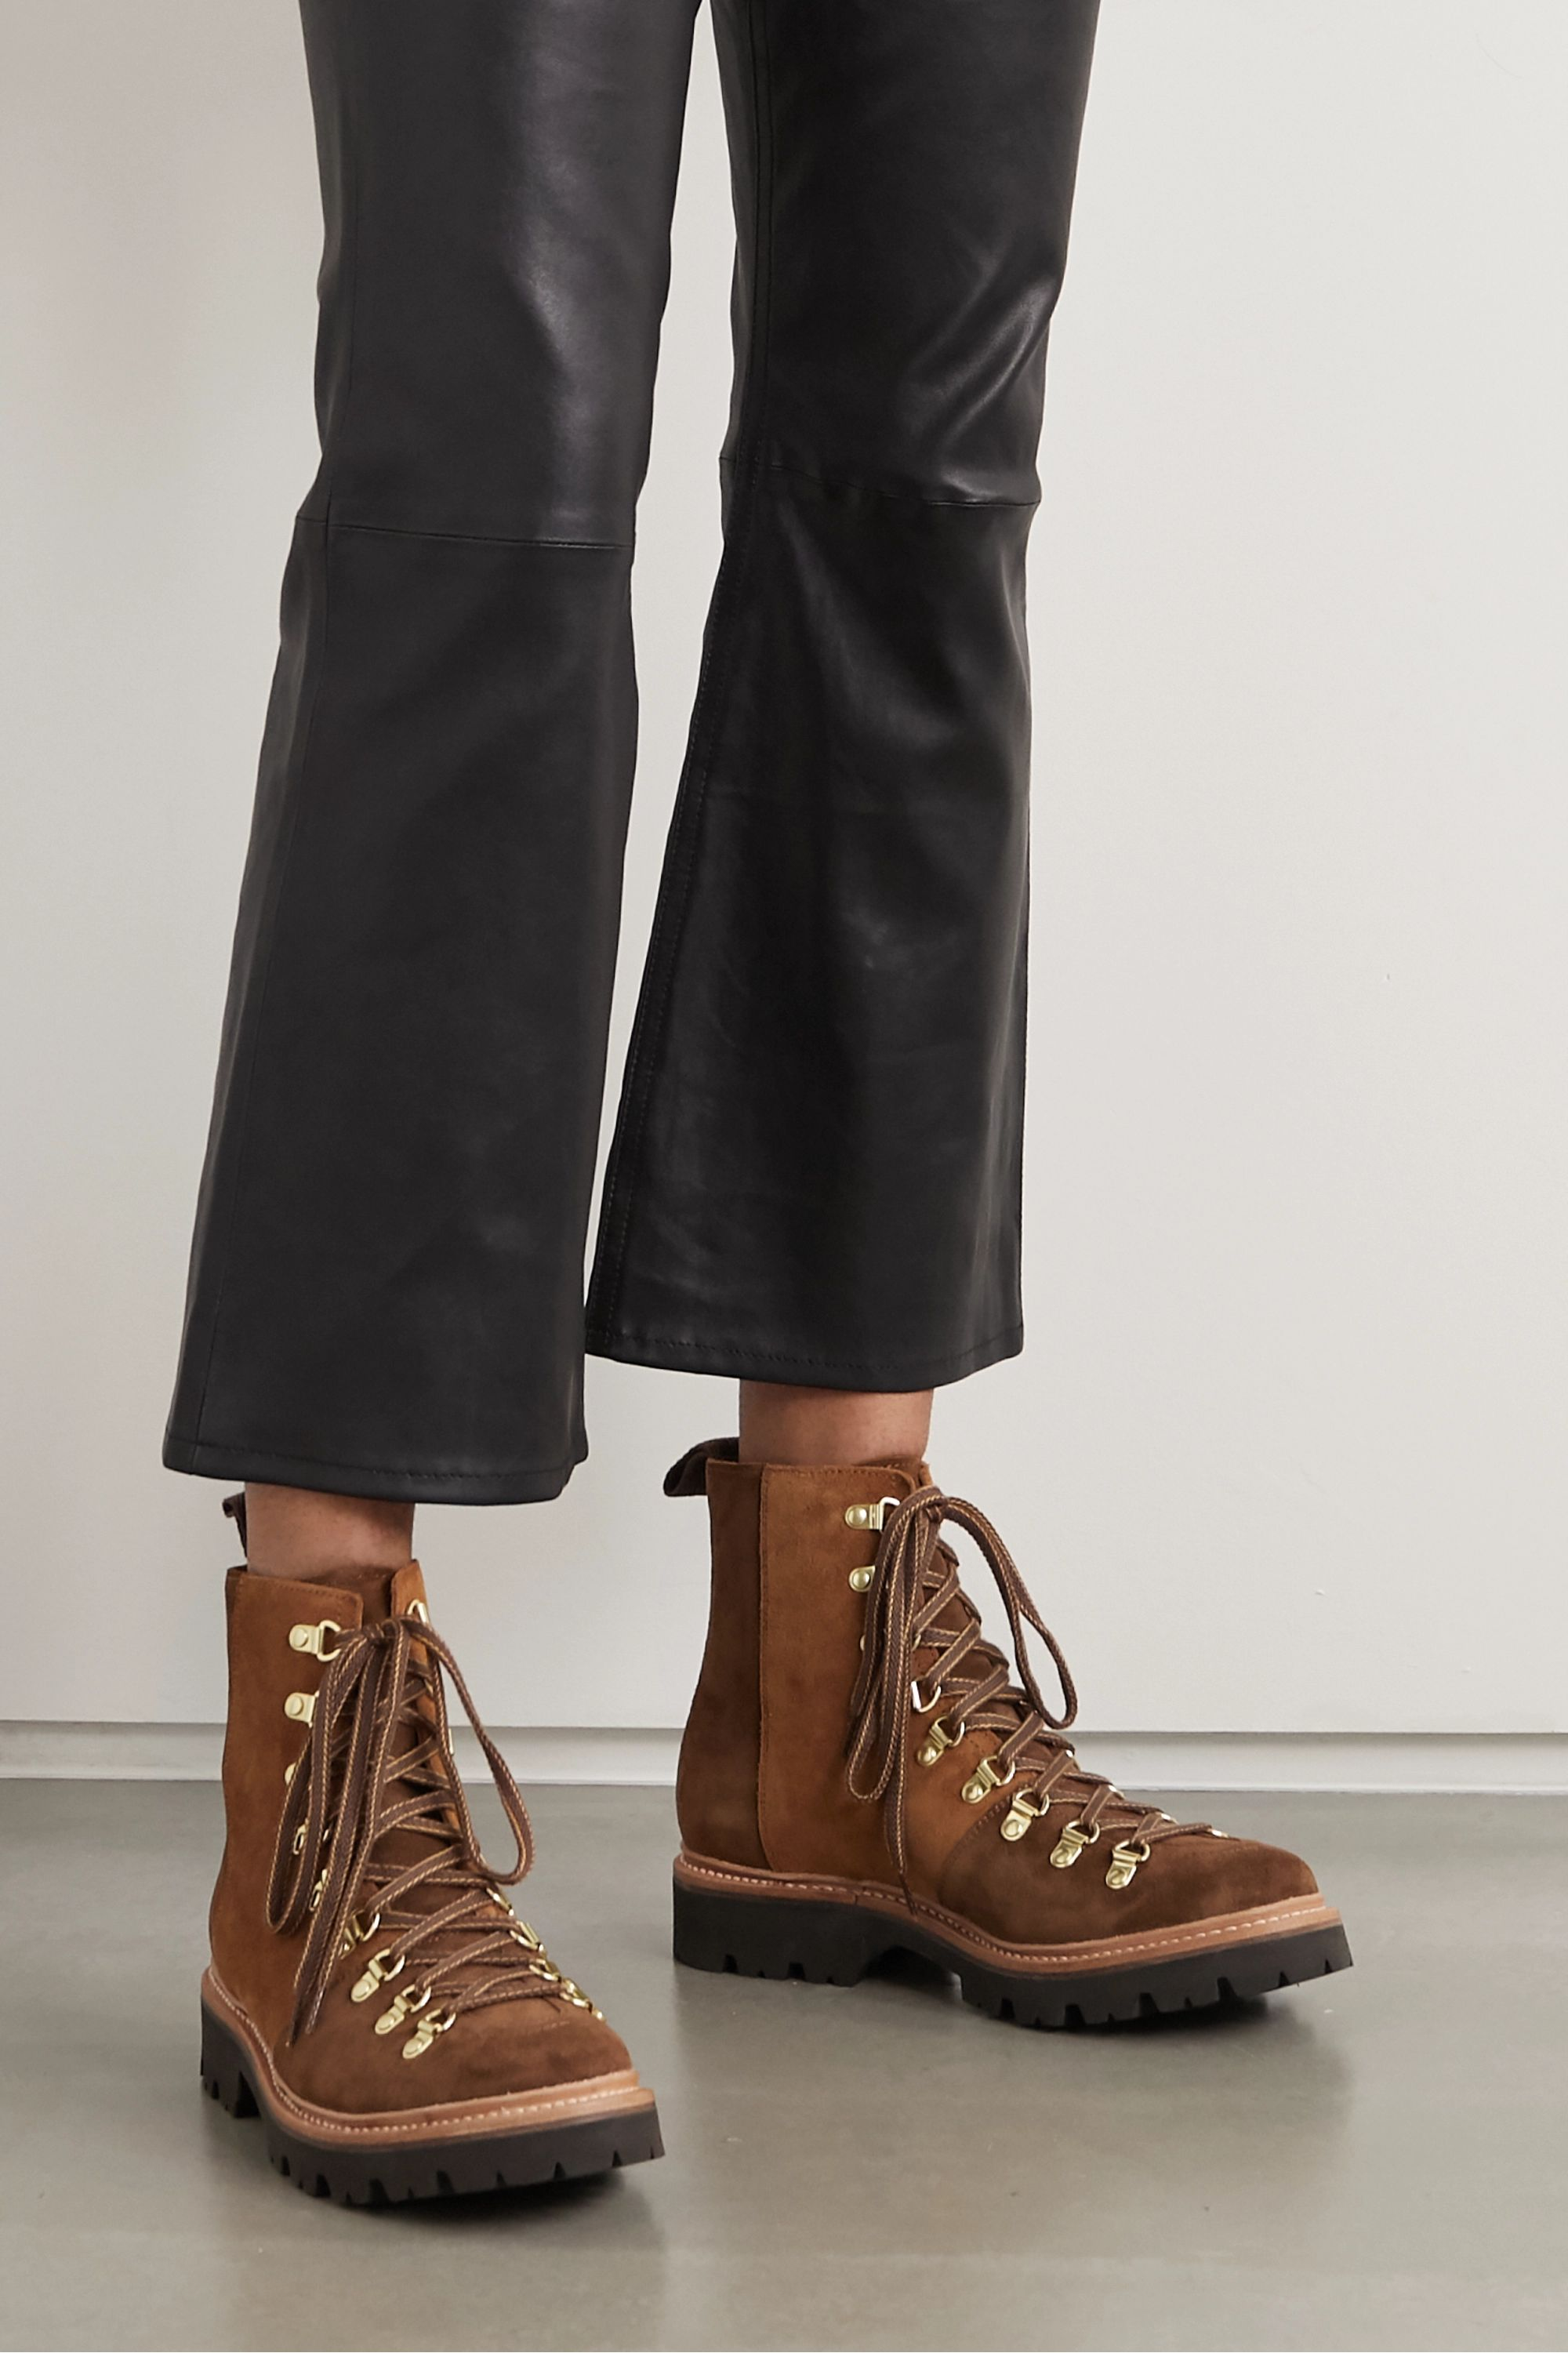 Grenson Nanette two-tone suede ankle boots